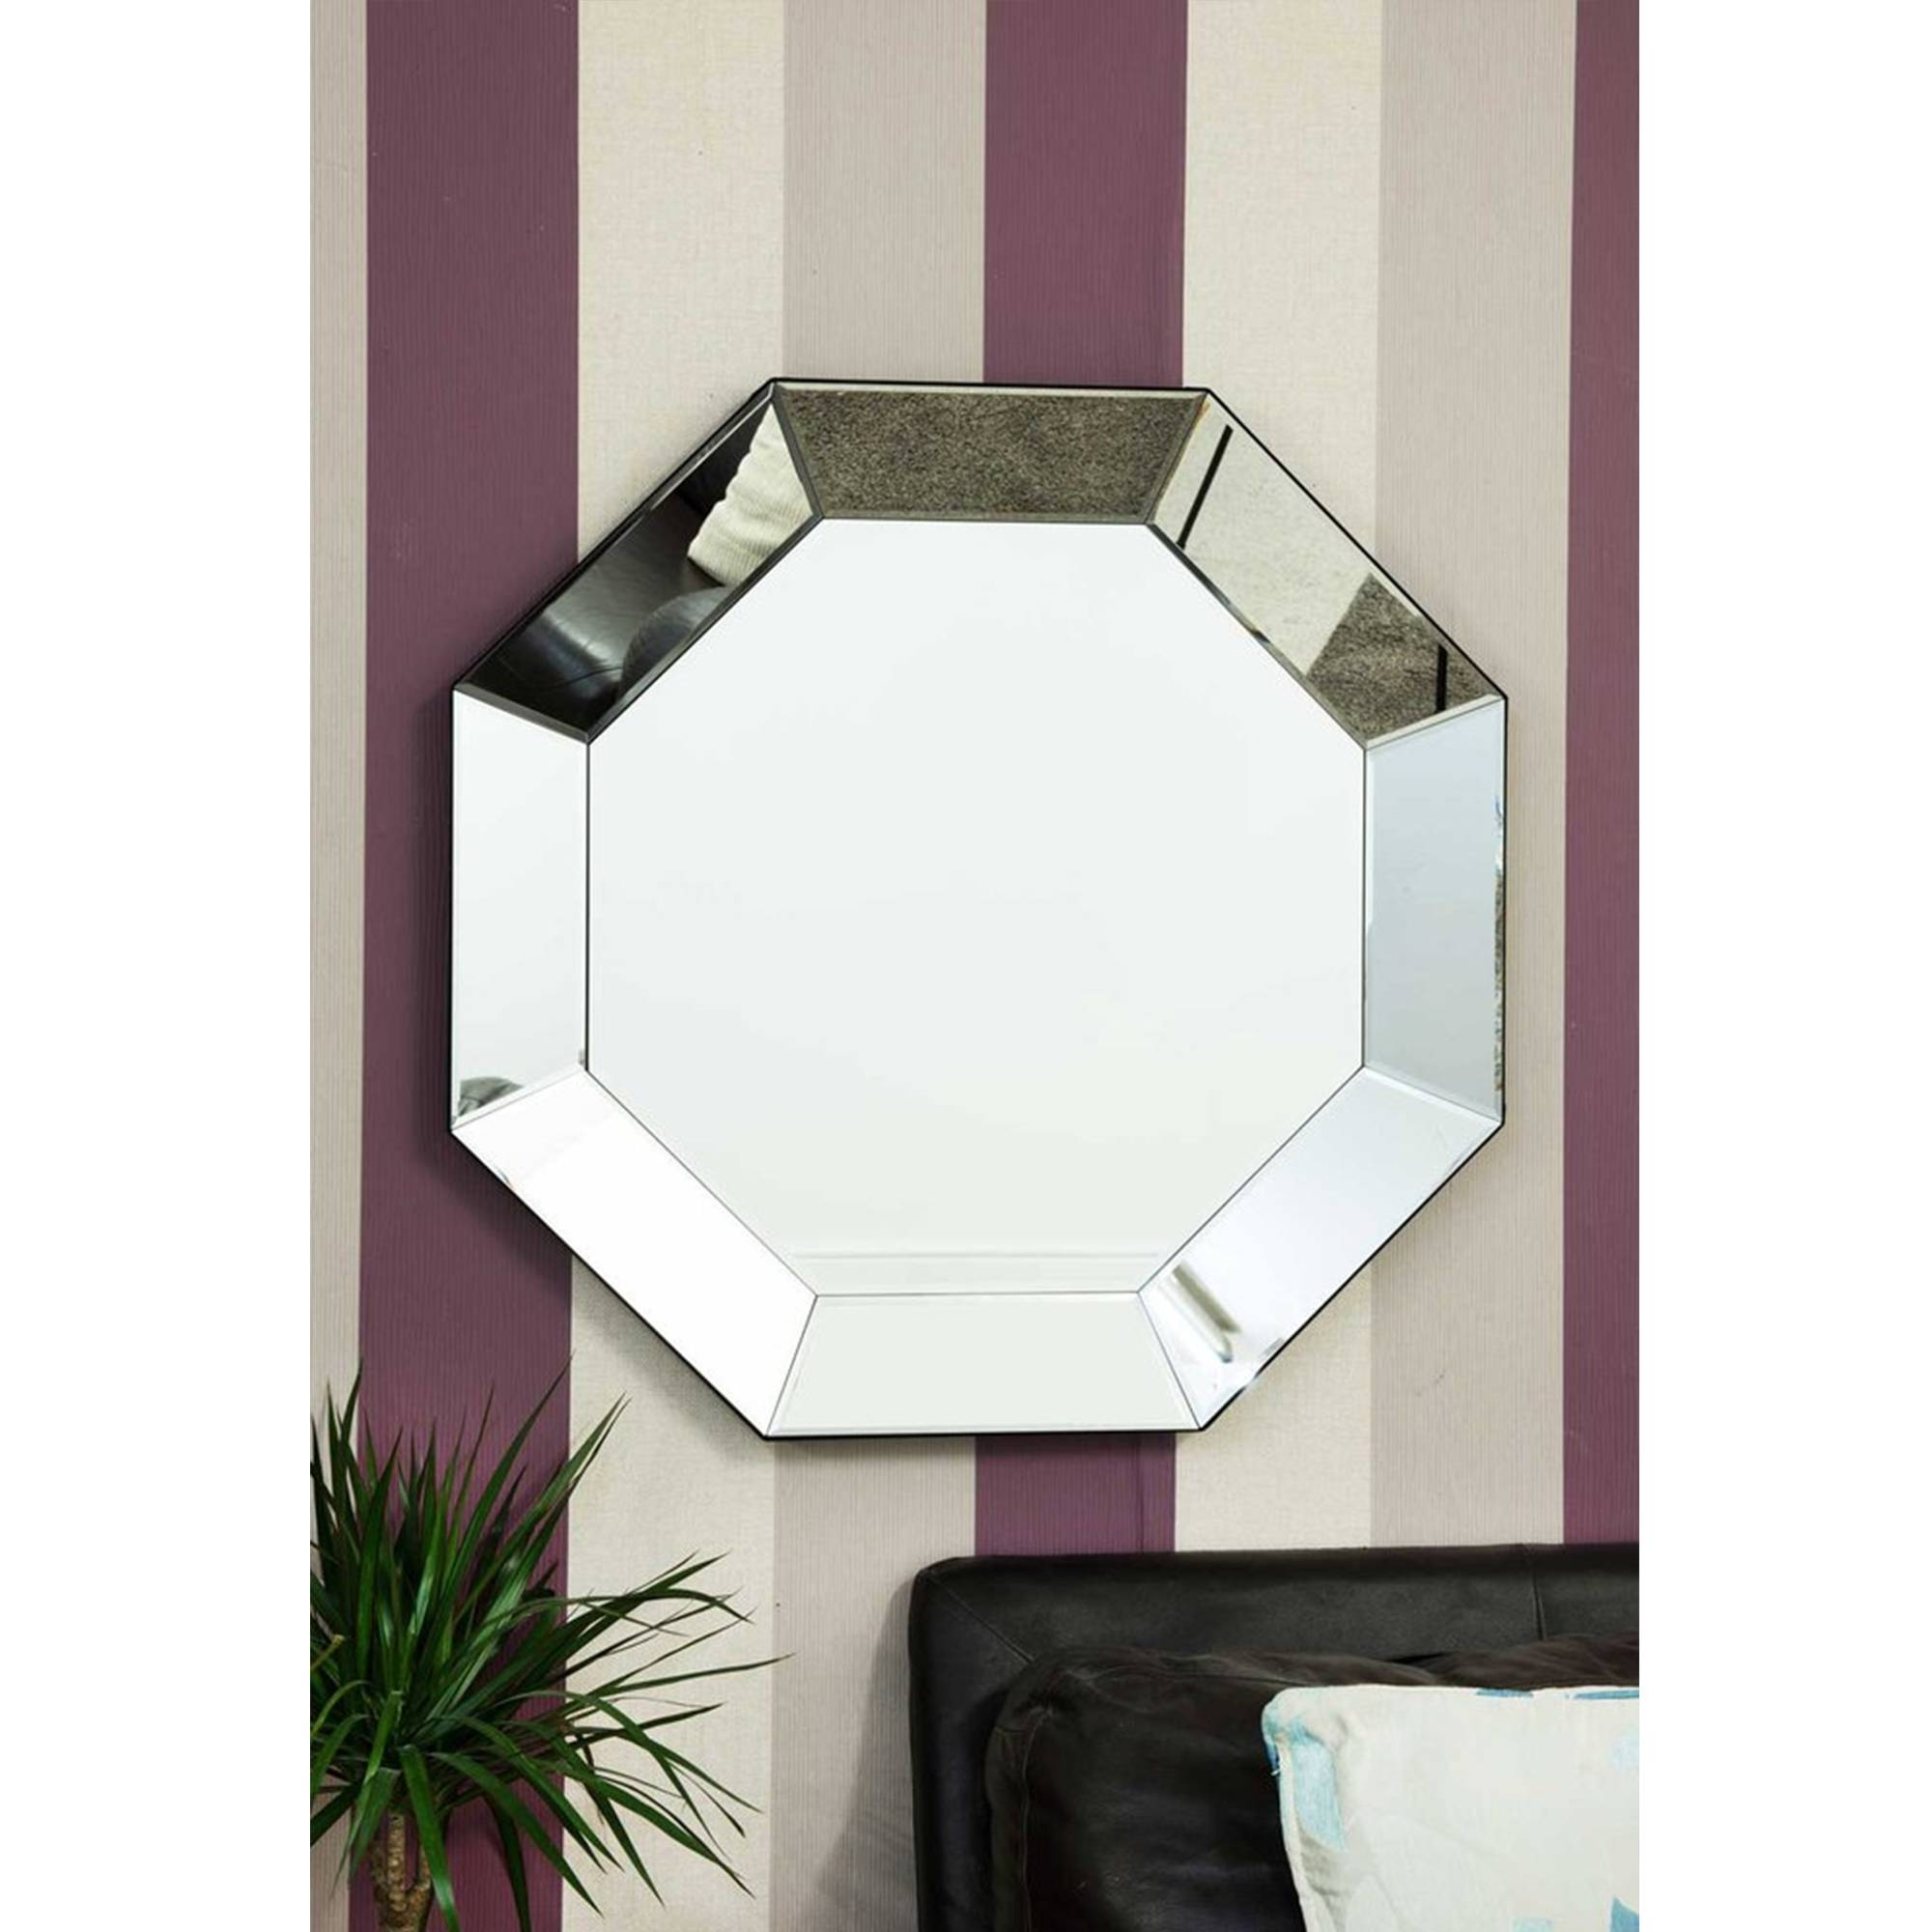 Octagan Tray Venetian Mirror | Decorative Glass Mirrors intended for Venetian Tray Mirrors (Image 16 of 25)